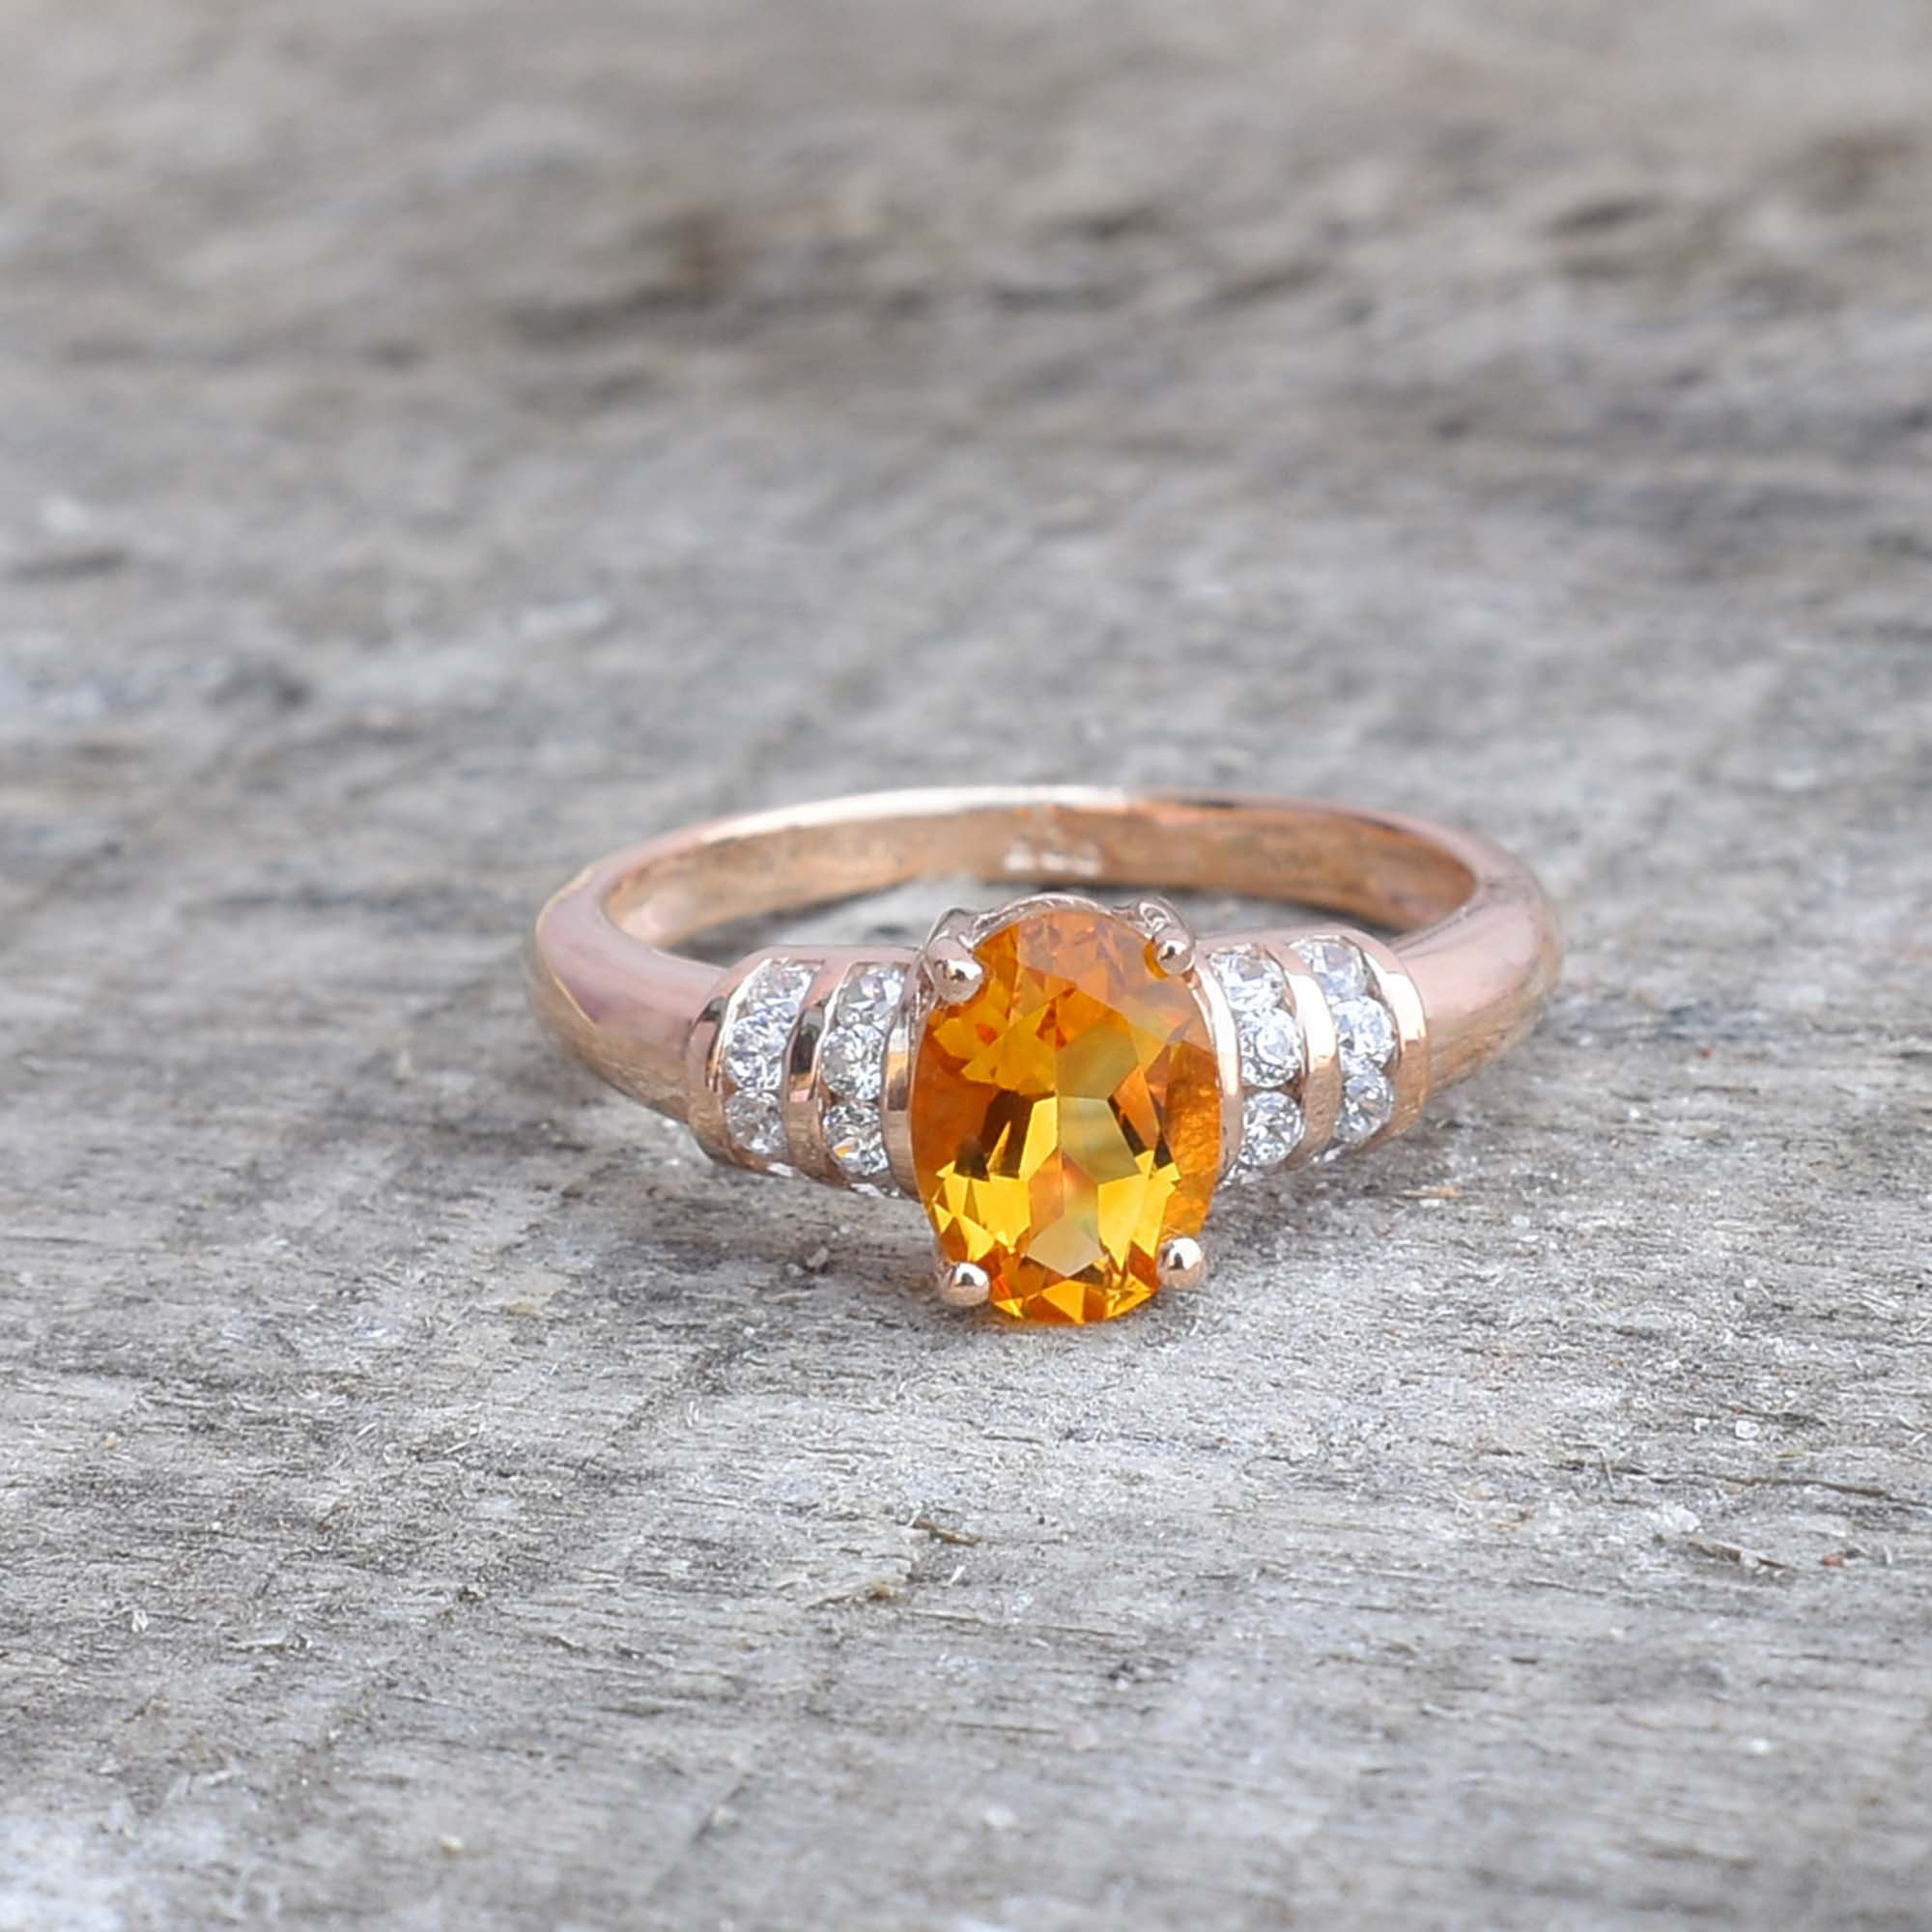 Silver Ring Rings For Women Yellow Ring Engagement Ring May Gift Statement Ring Citrine ring Gift For Sis November Birthstone